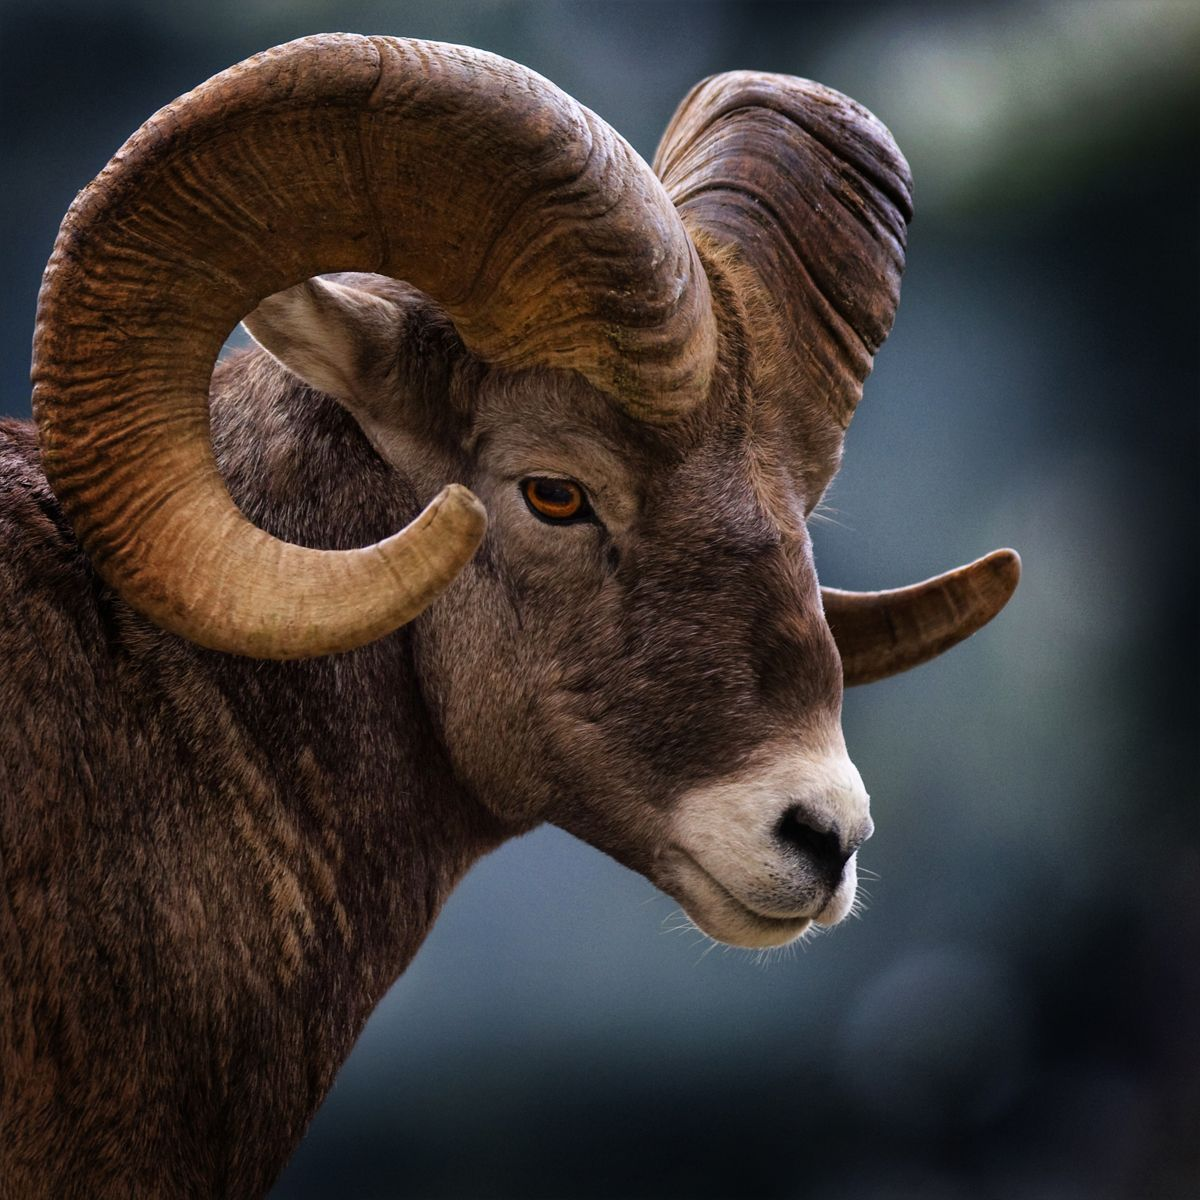 45+ Mountain Animals With Big Horns